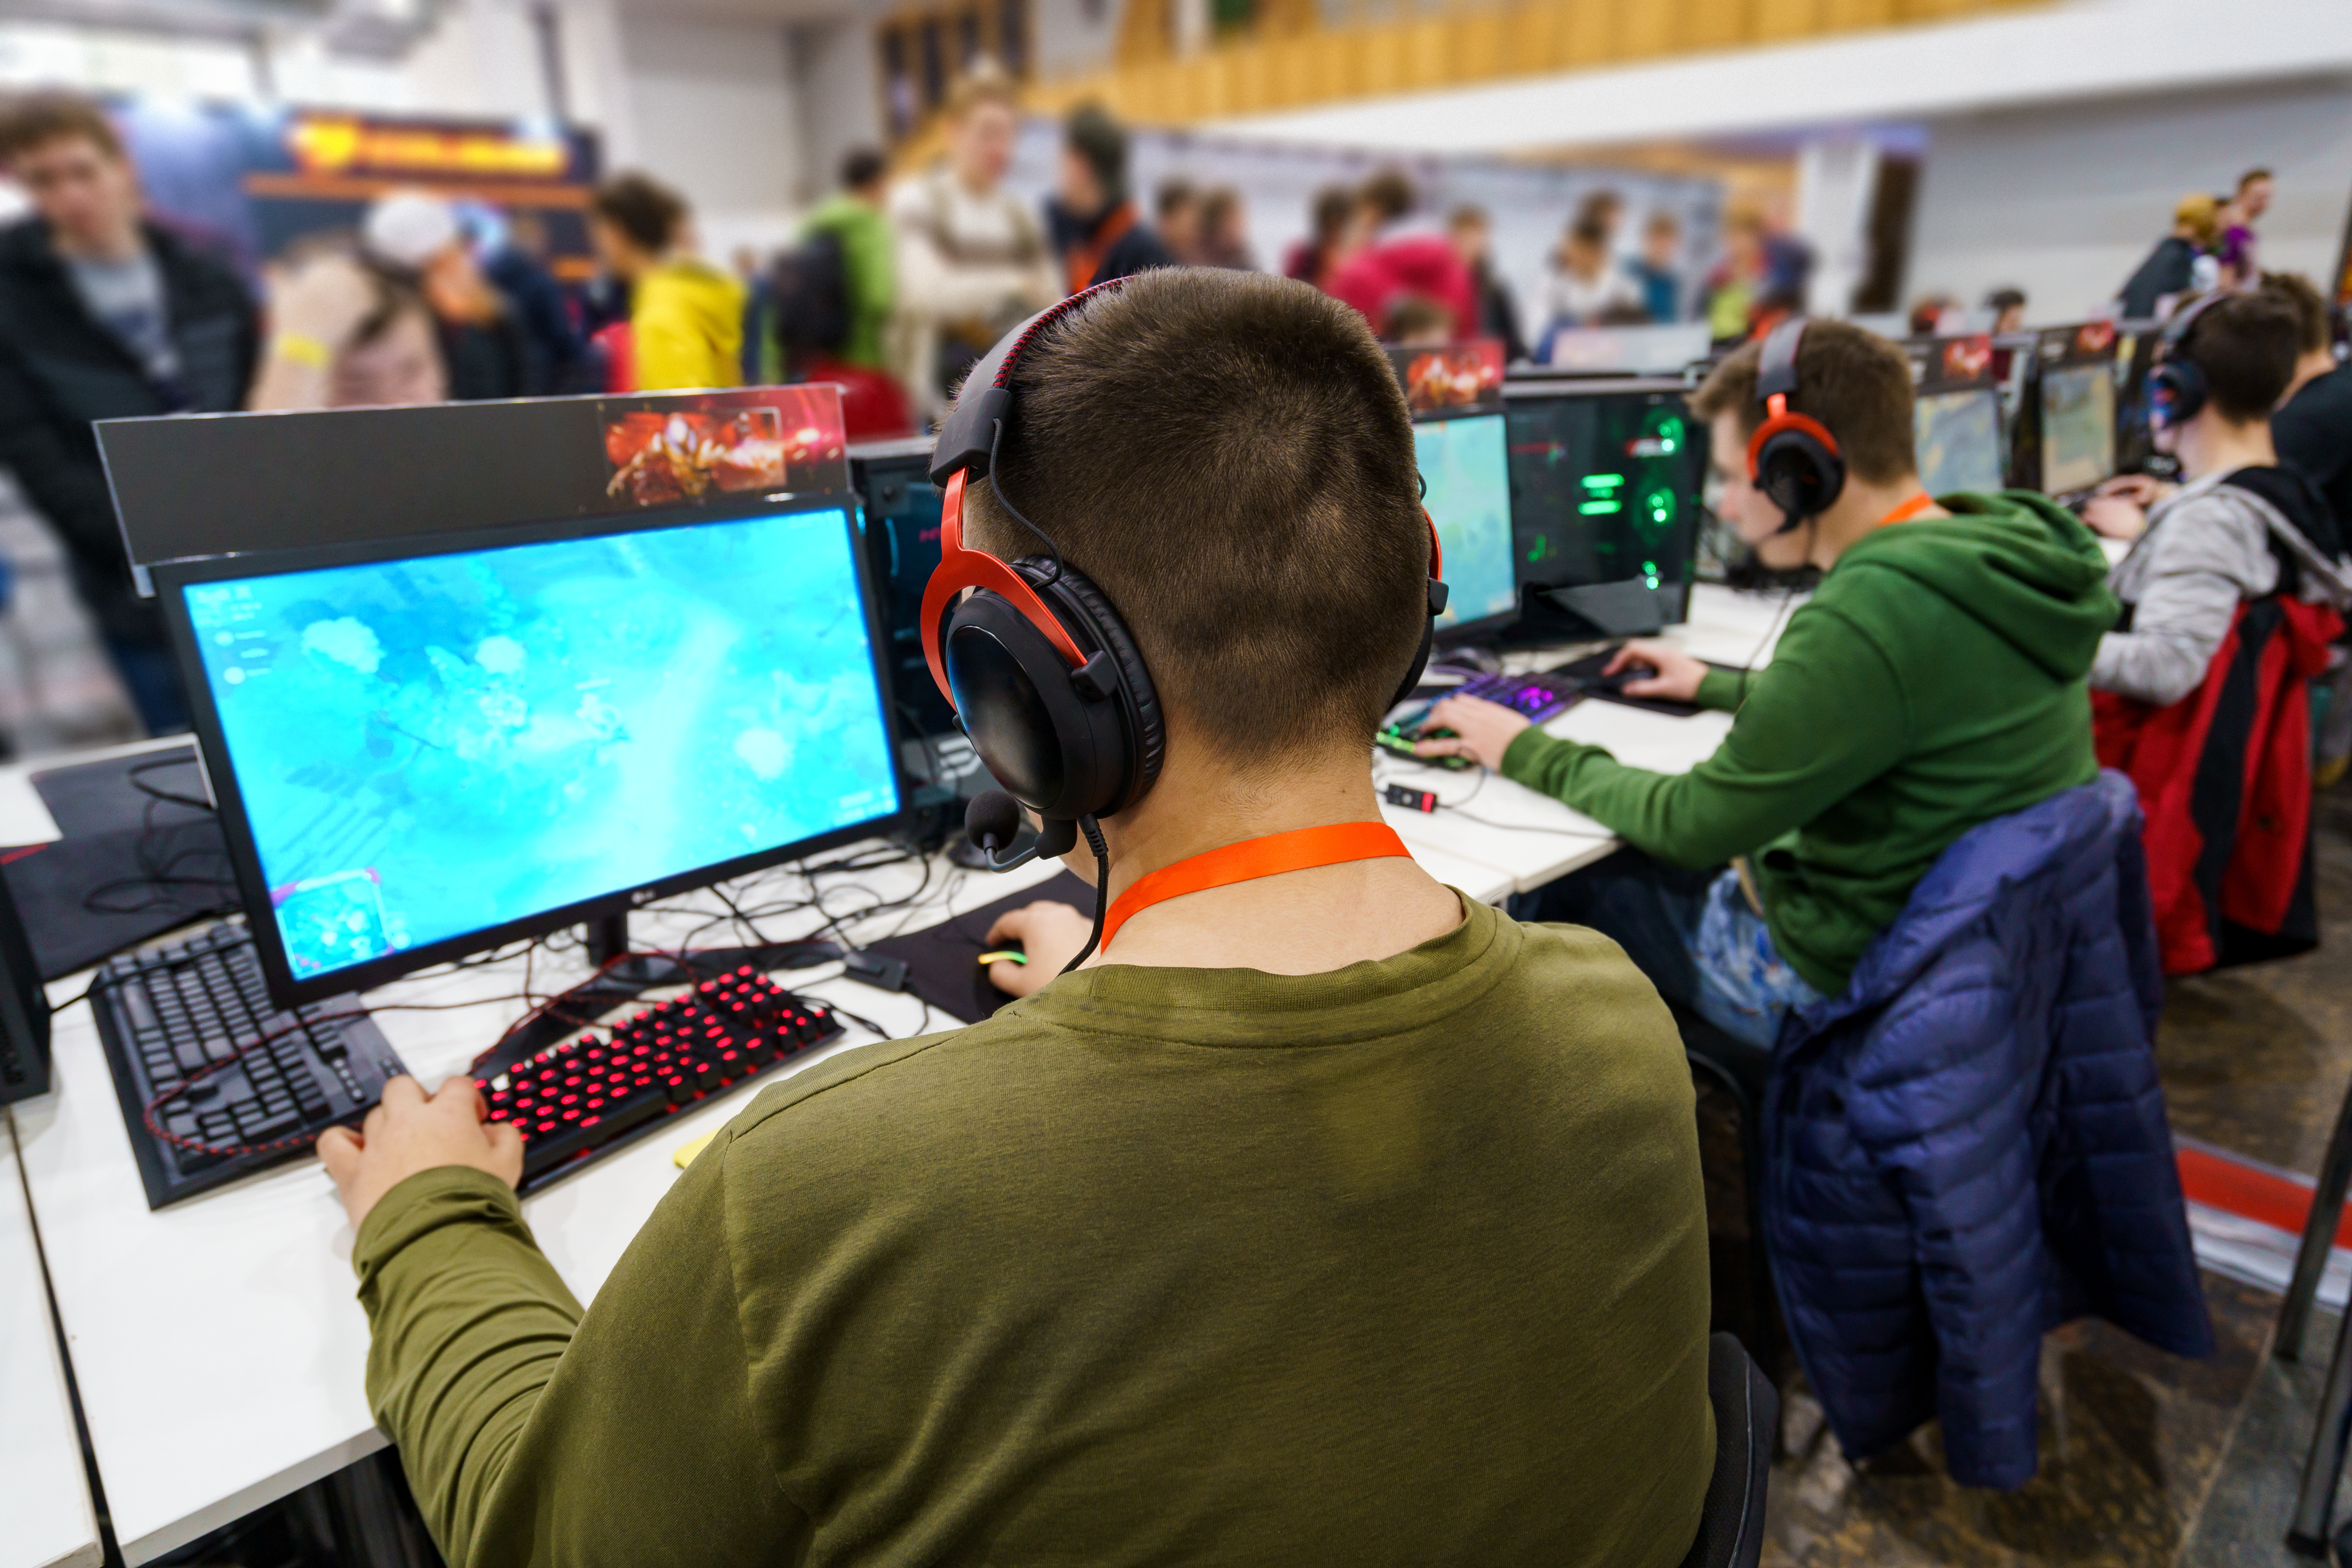 Cater your esports venue to all types of gamers.